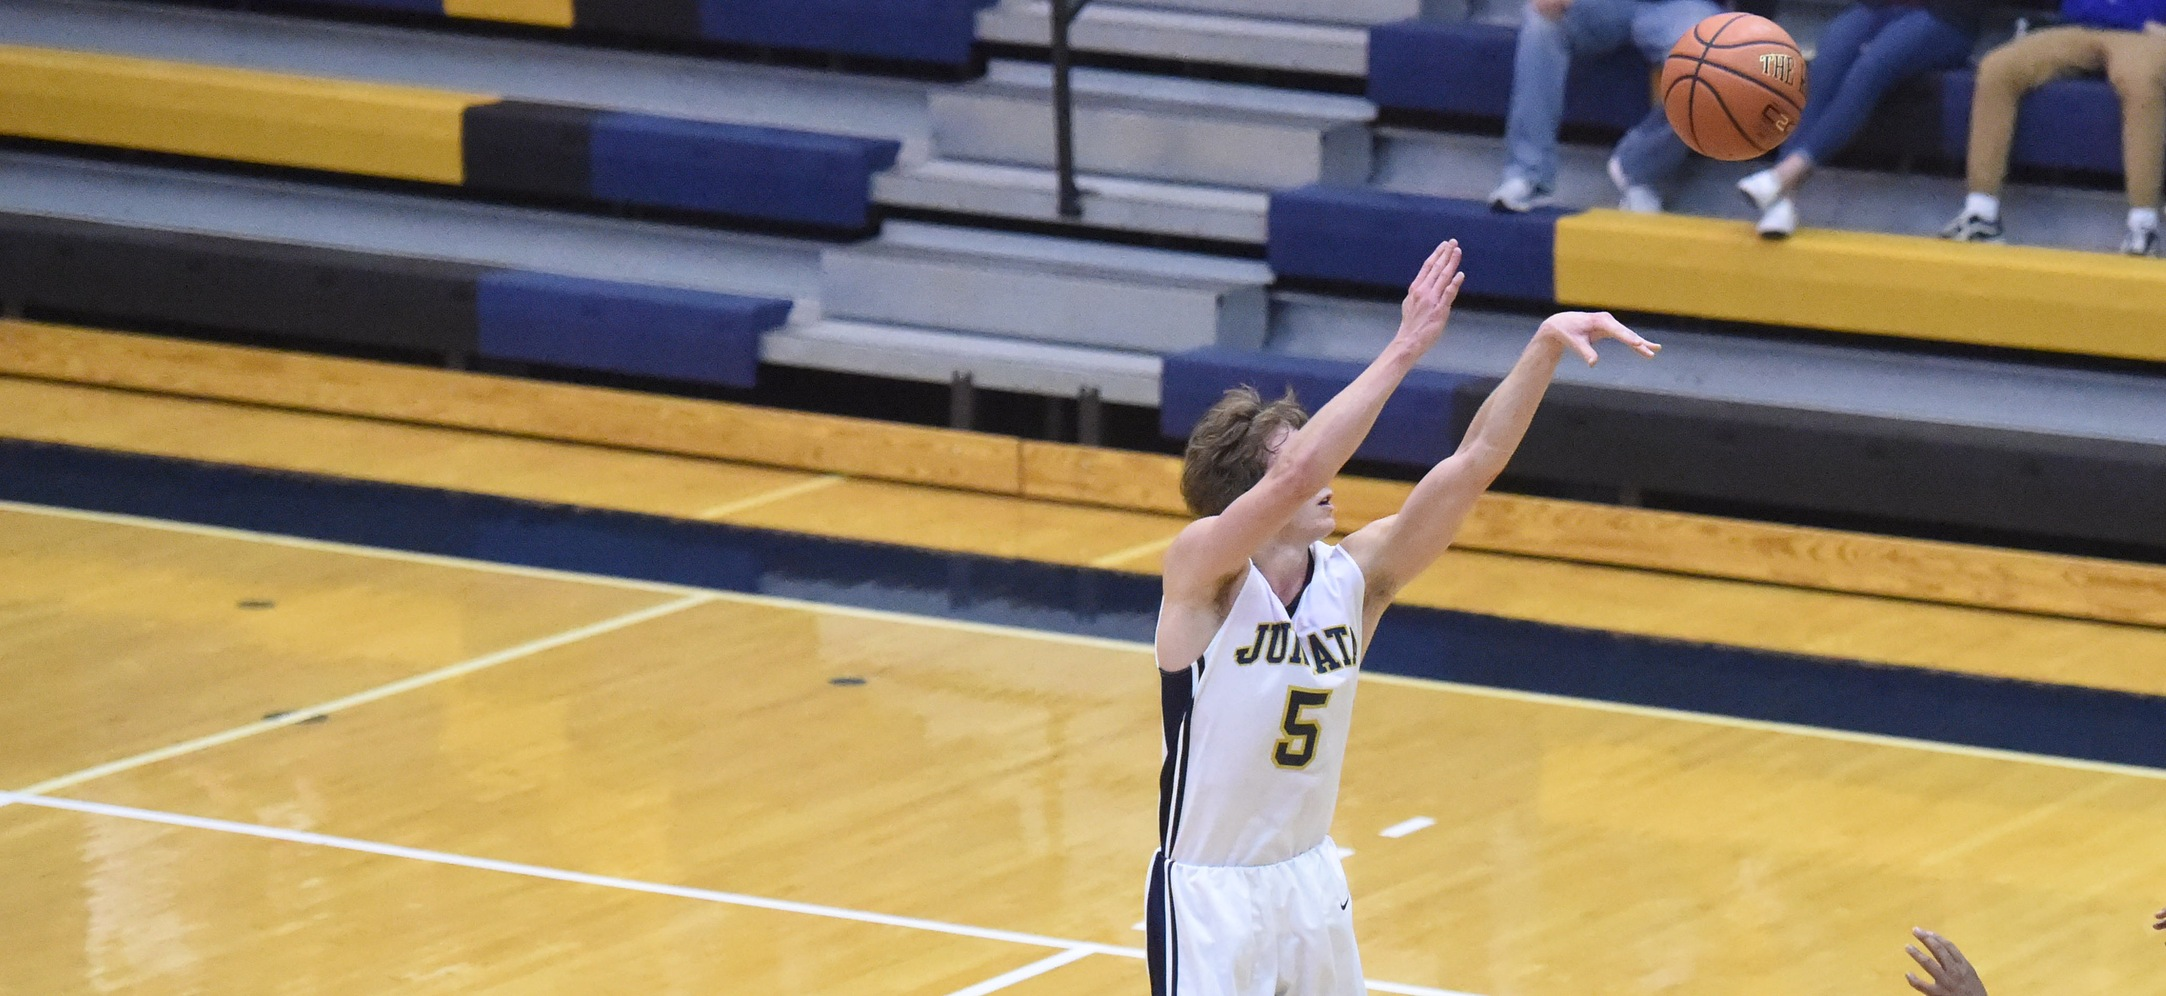 Seth Brewer fires up a three-pointer.